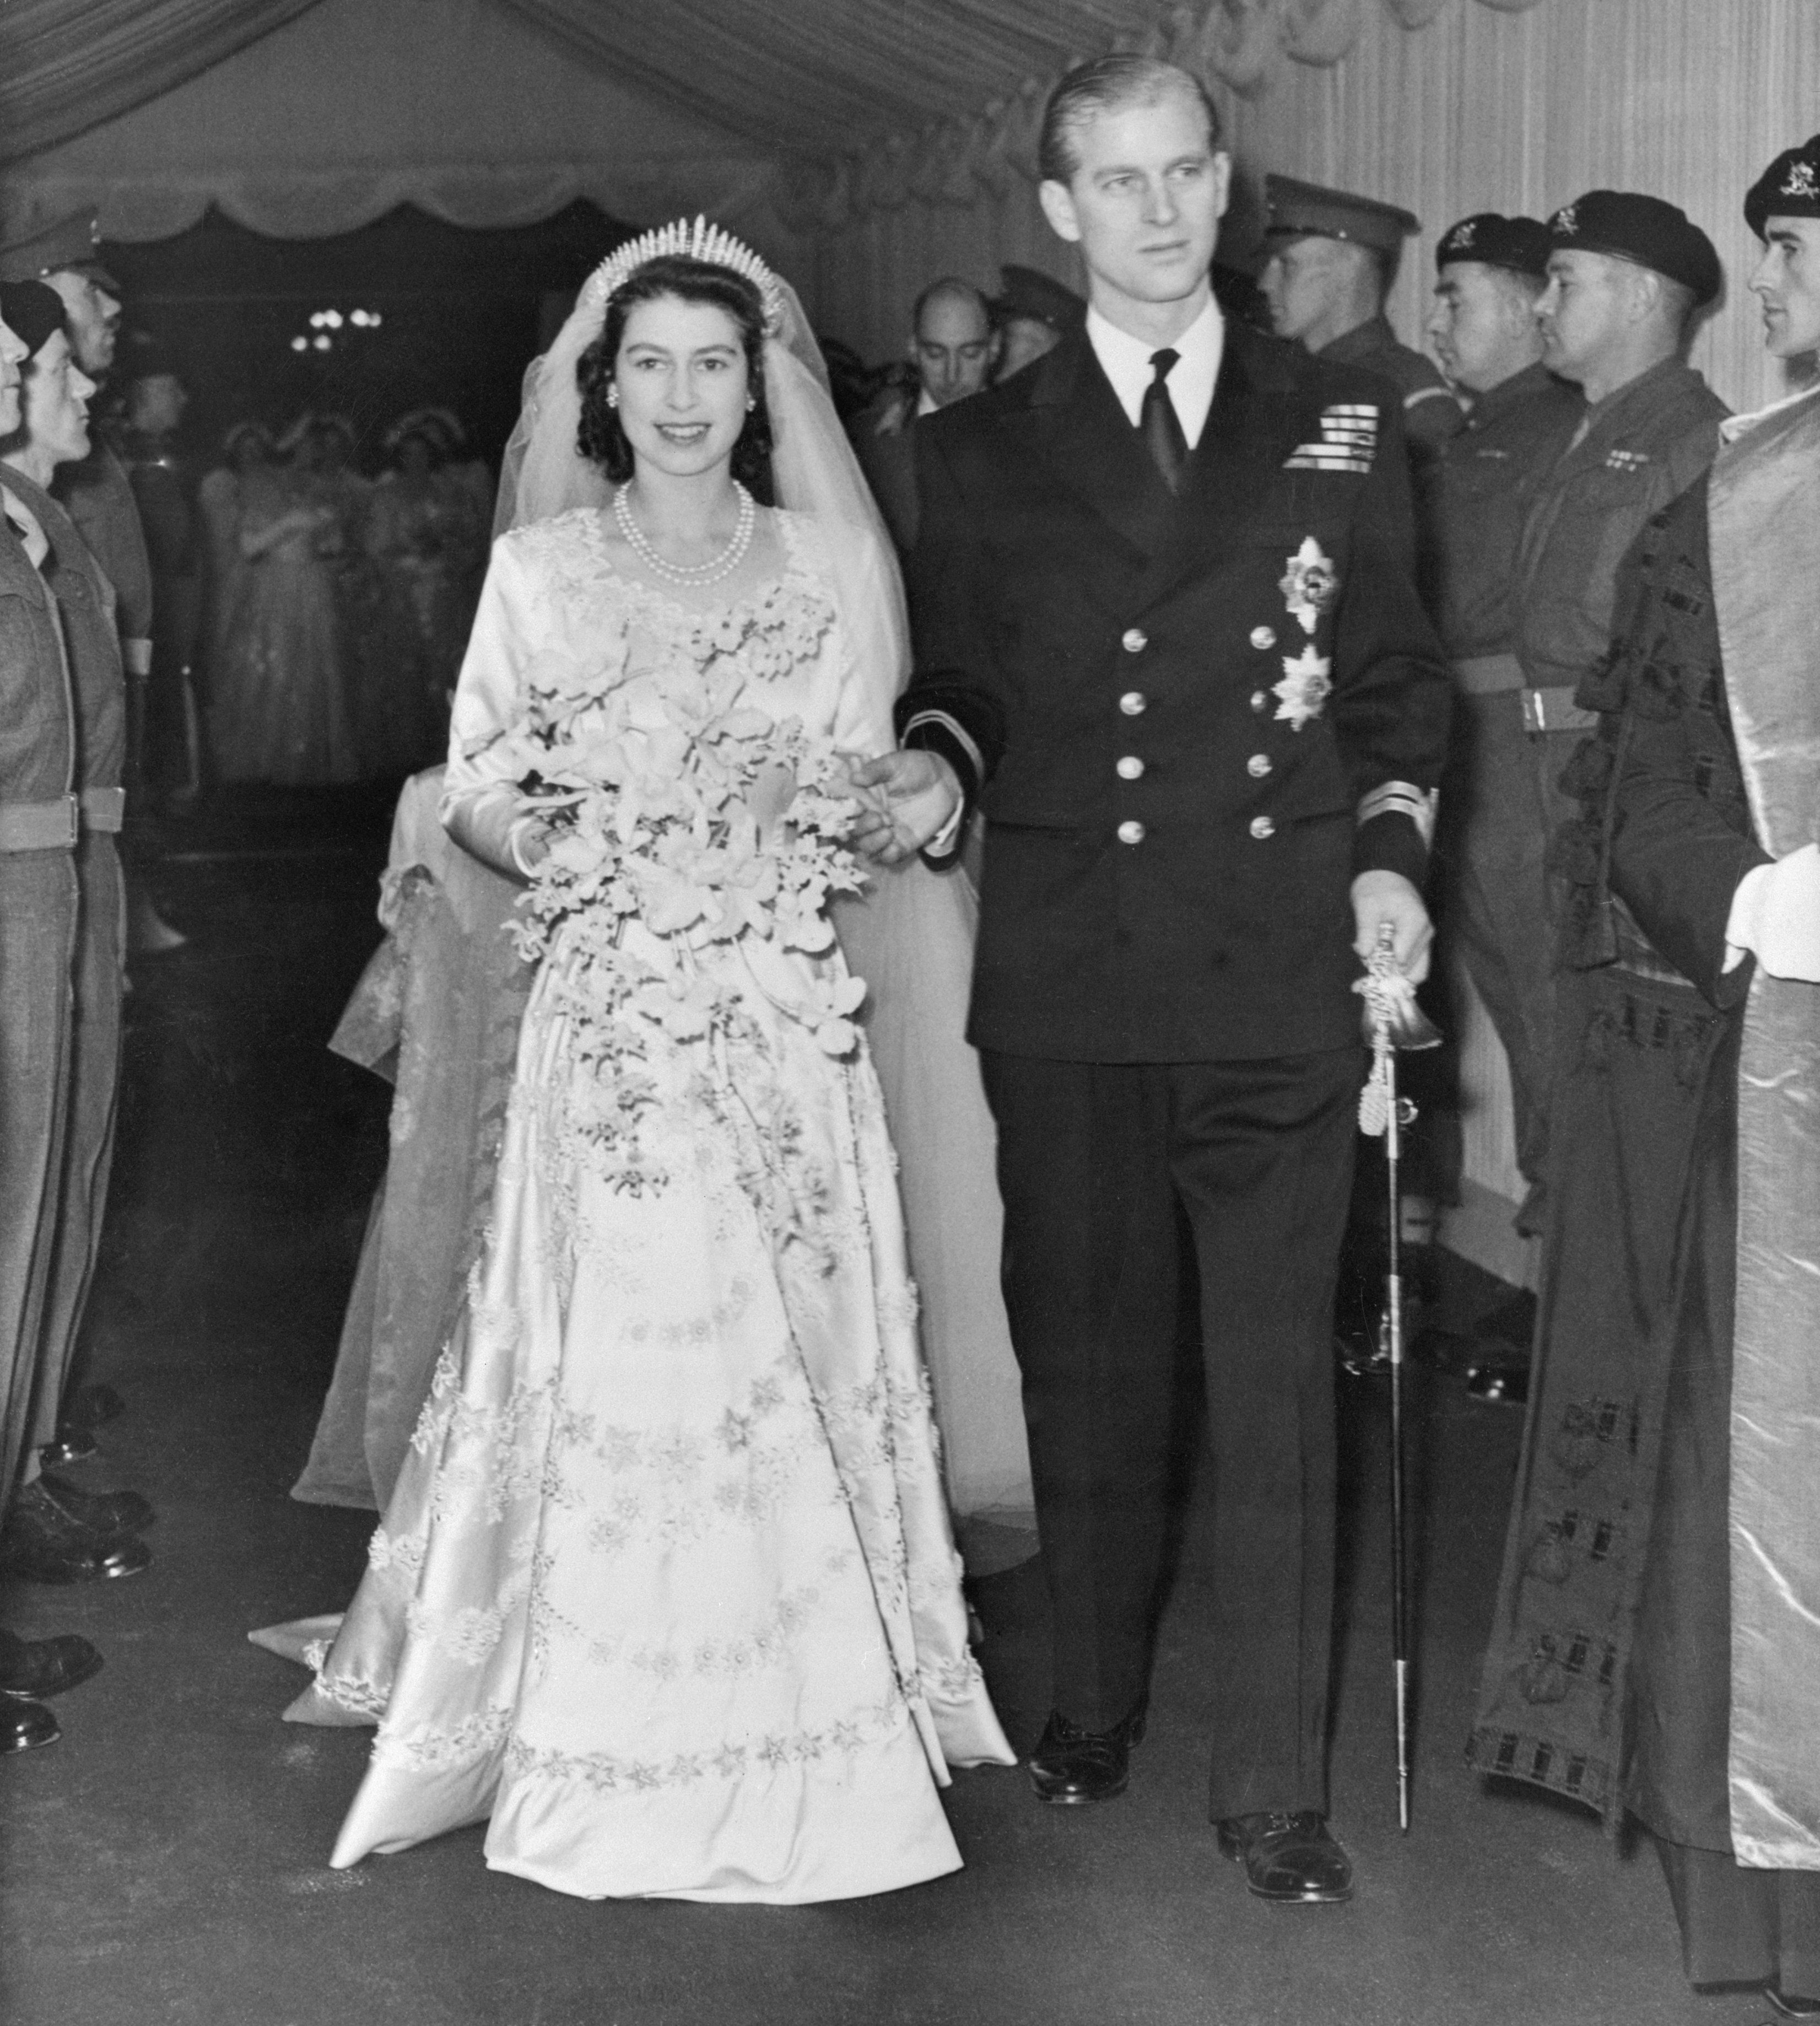 The Queen and Duke of Edinburgh on their wedding day in